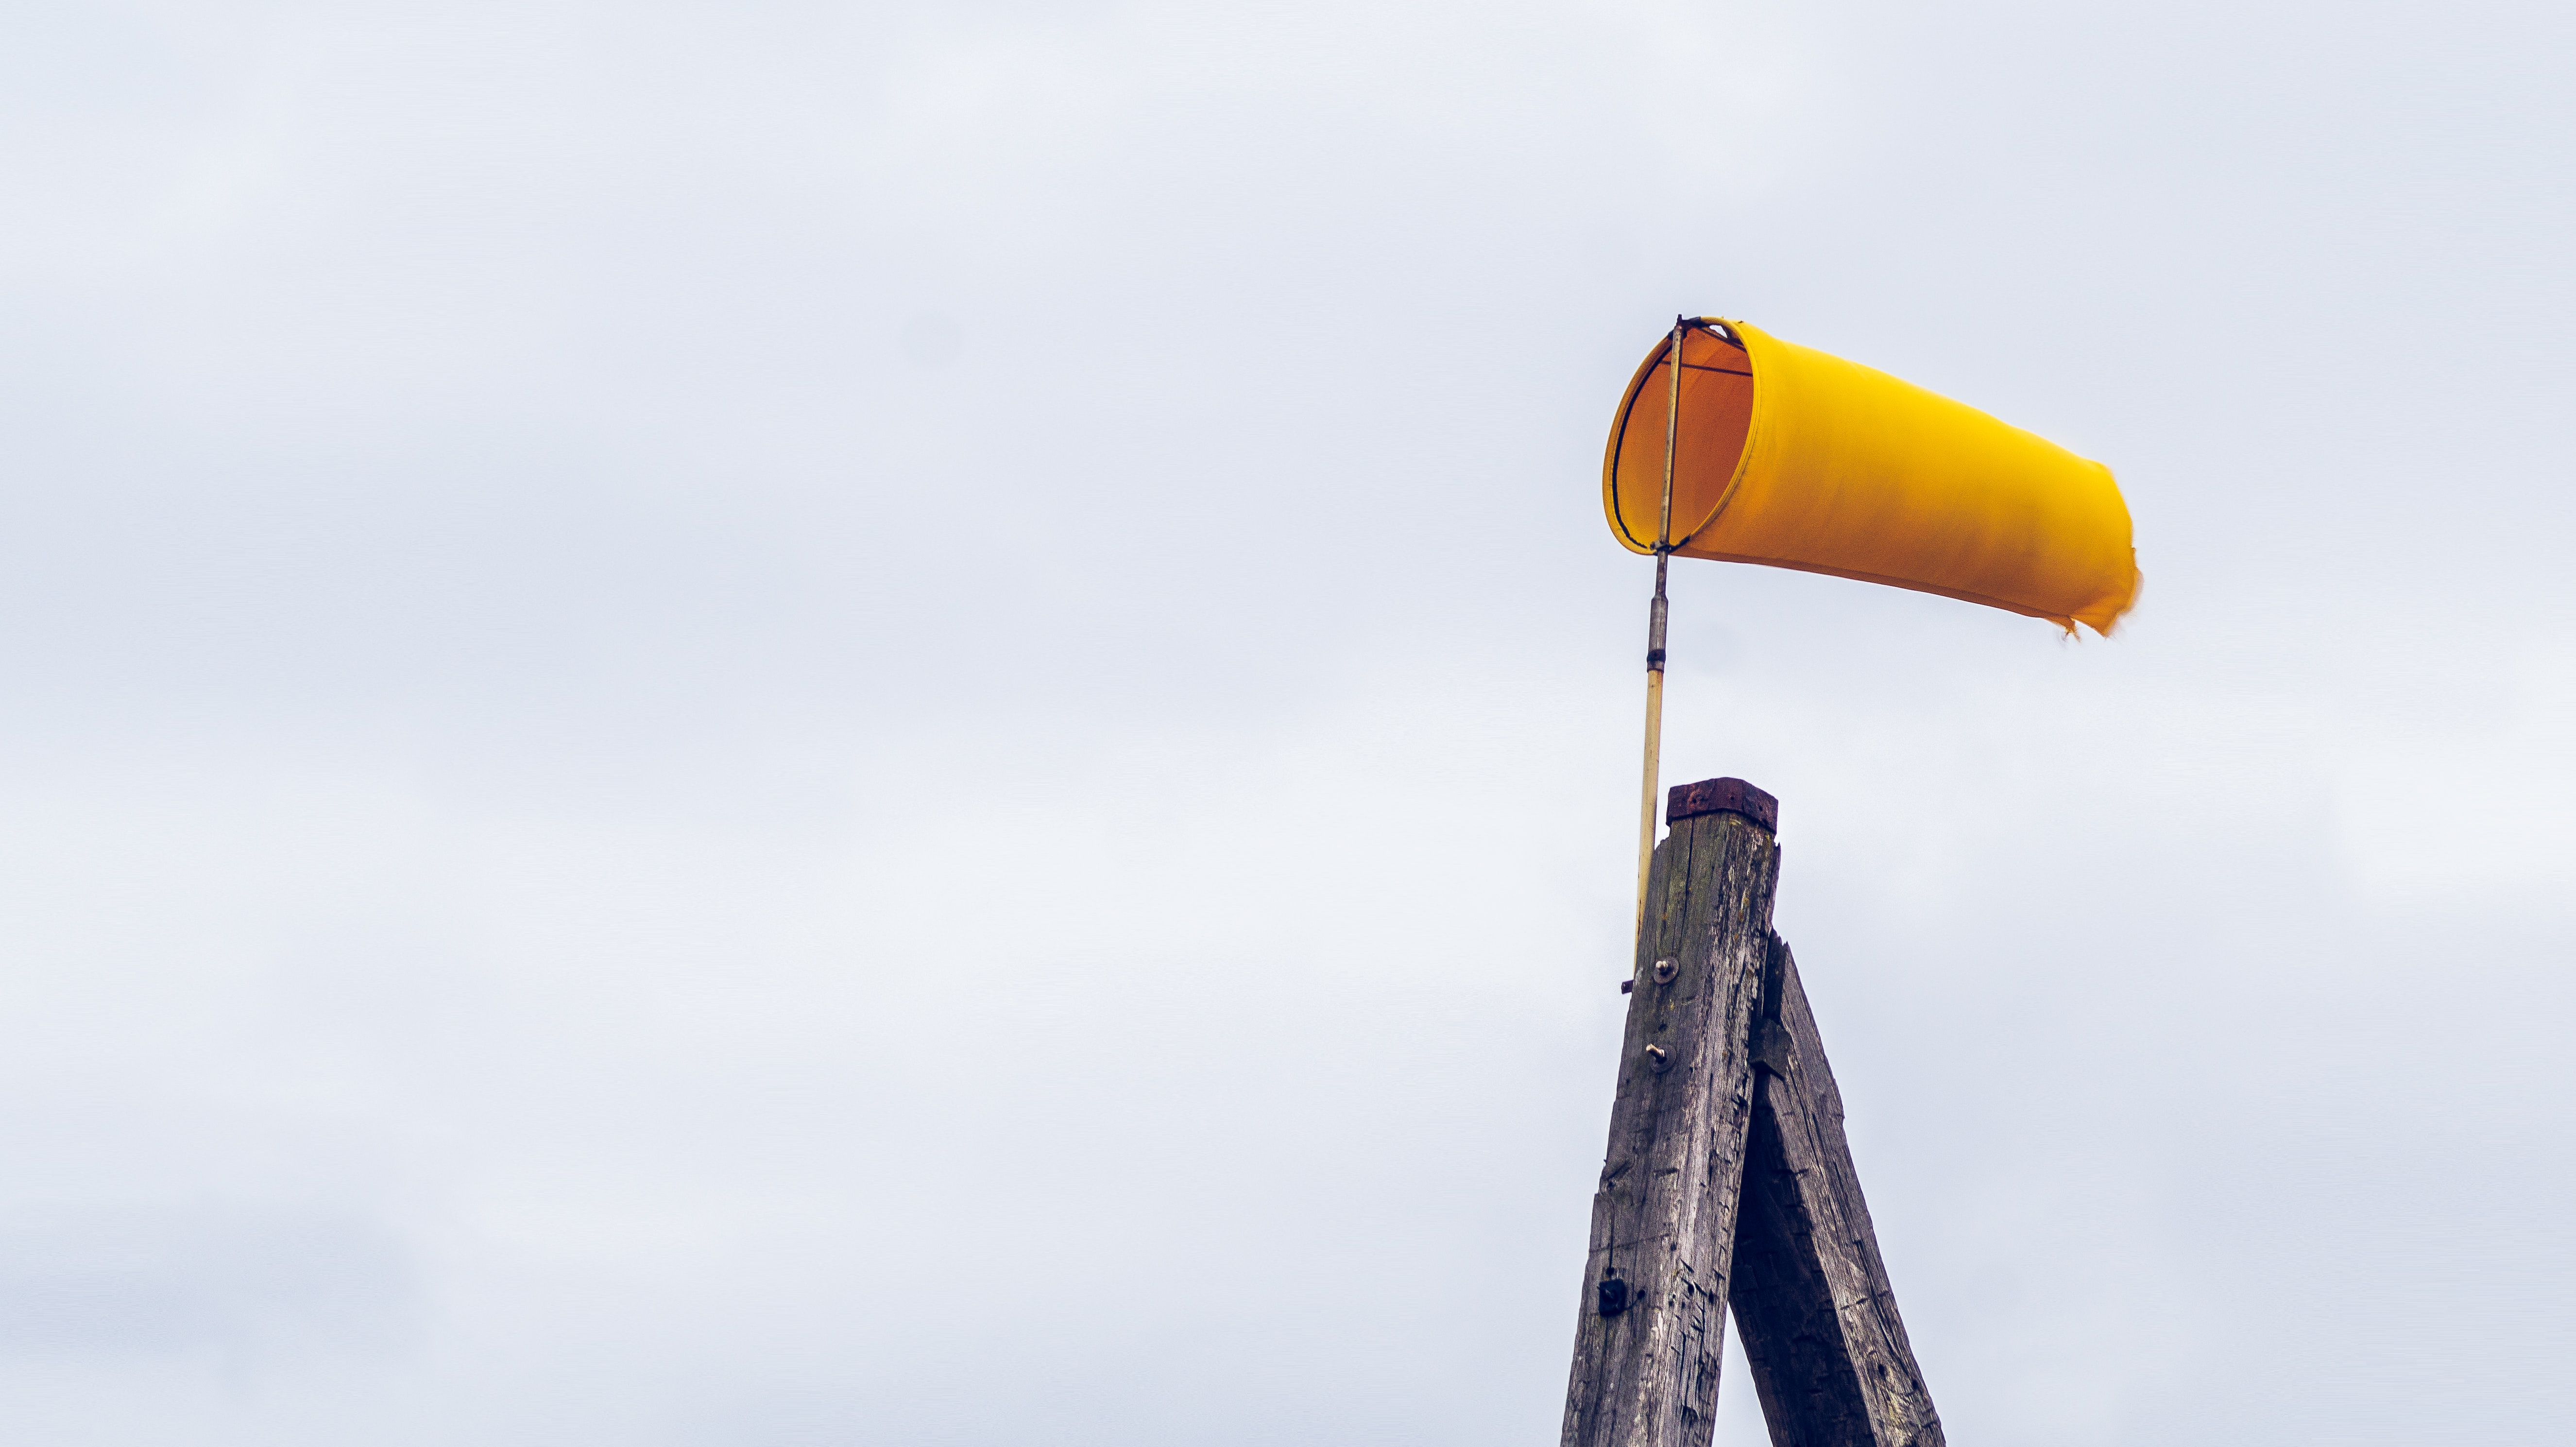 yellow air lantern on brown wooden post